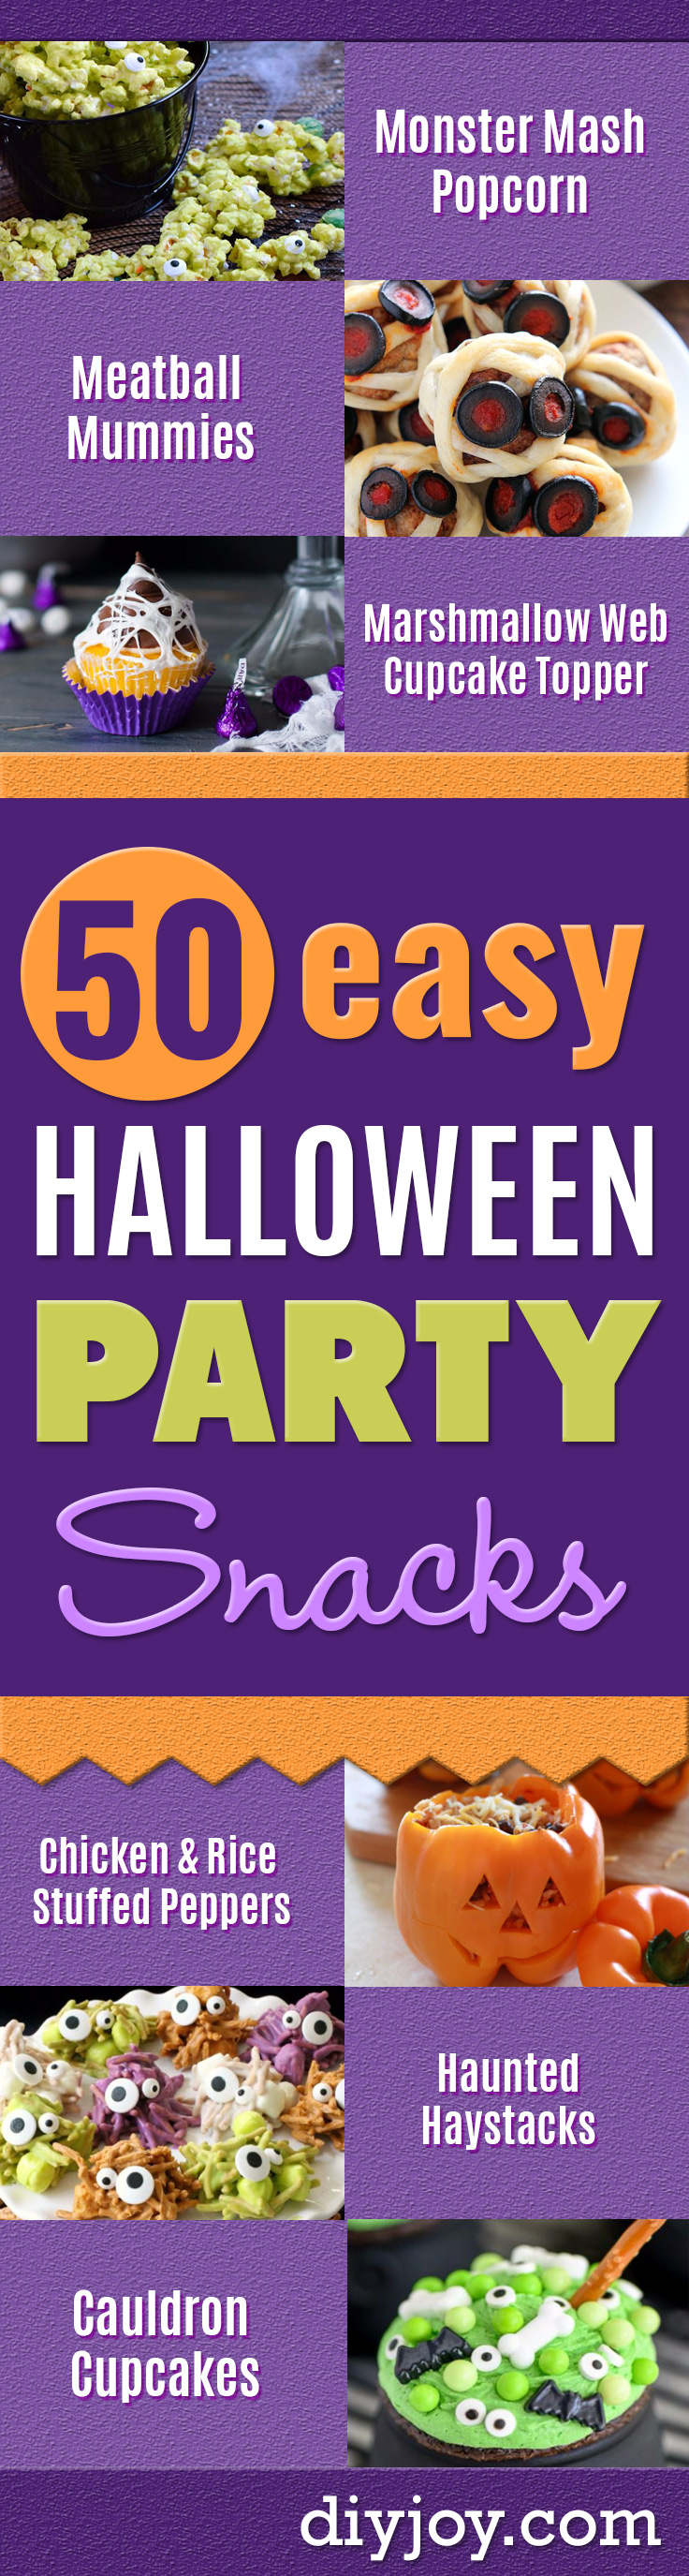 Best Halloween Party Snacks - Healthy Ideas for Kids for School, Teens and Adults - Easy and Quick Recipes and Idea for Dips, Chips, Spooky Cookies and Treats - Appetizers and Finger Foods Made With Vegetables, No Candy, Cheap Food, Scary DIY Party Foods With Step by Step Tutorials http://diyjoy.com/halloween-party-snacks